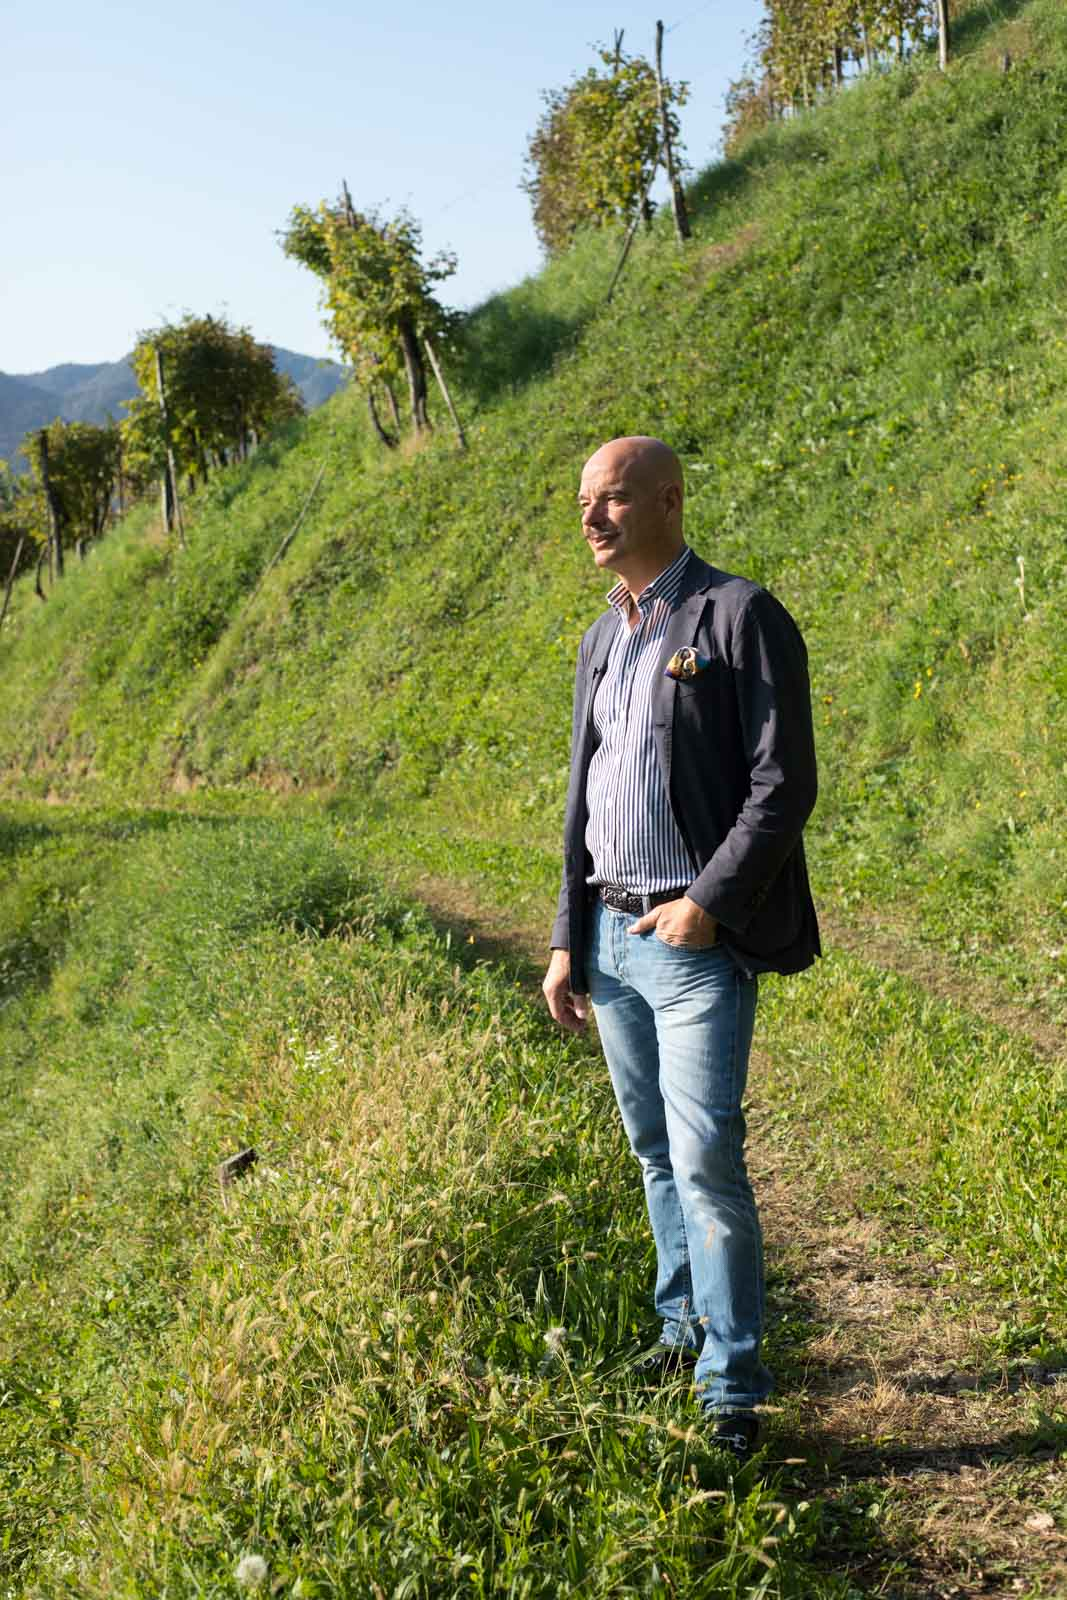 Gianluca Bisol, proprietor of Bisol, stands in the Rive di Campea vineyard near Valdobbiadene. ©Kevin Day/Opening a Bottle